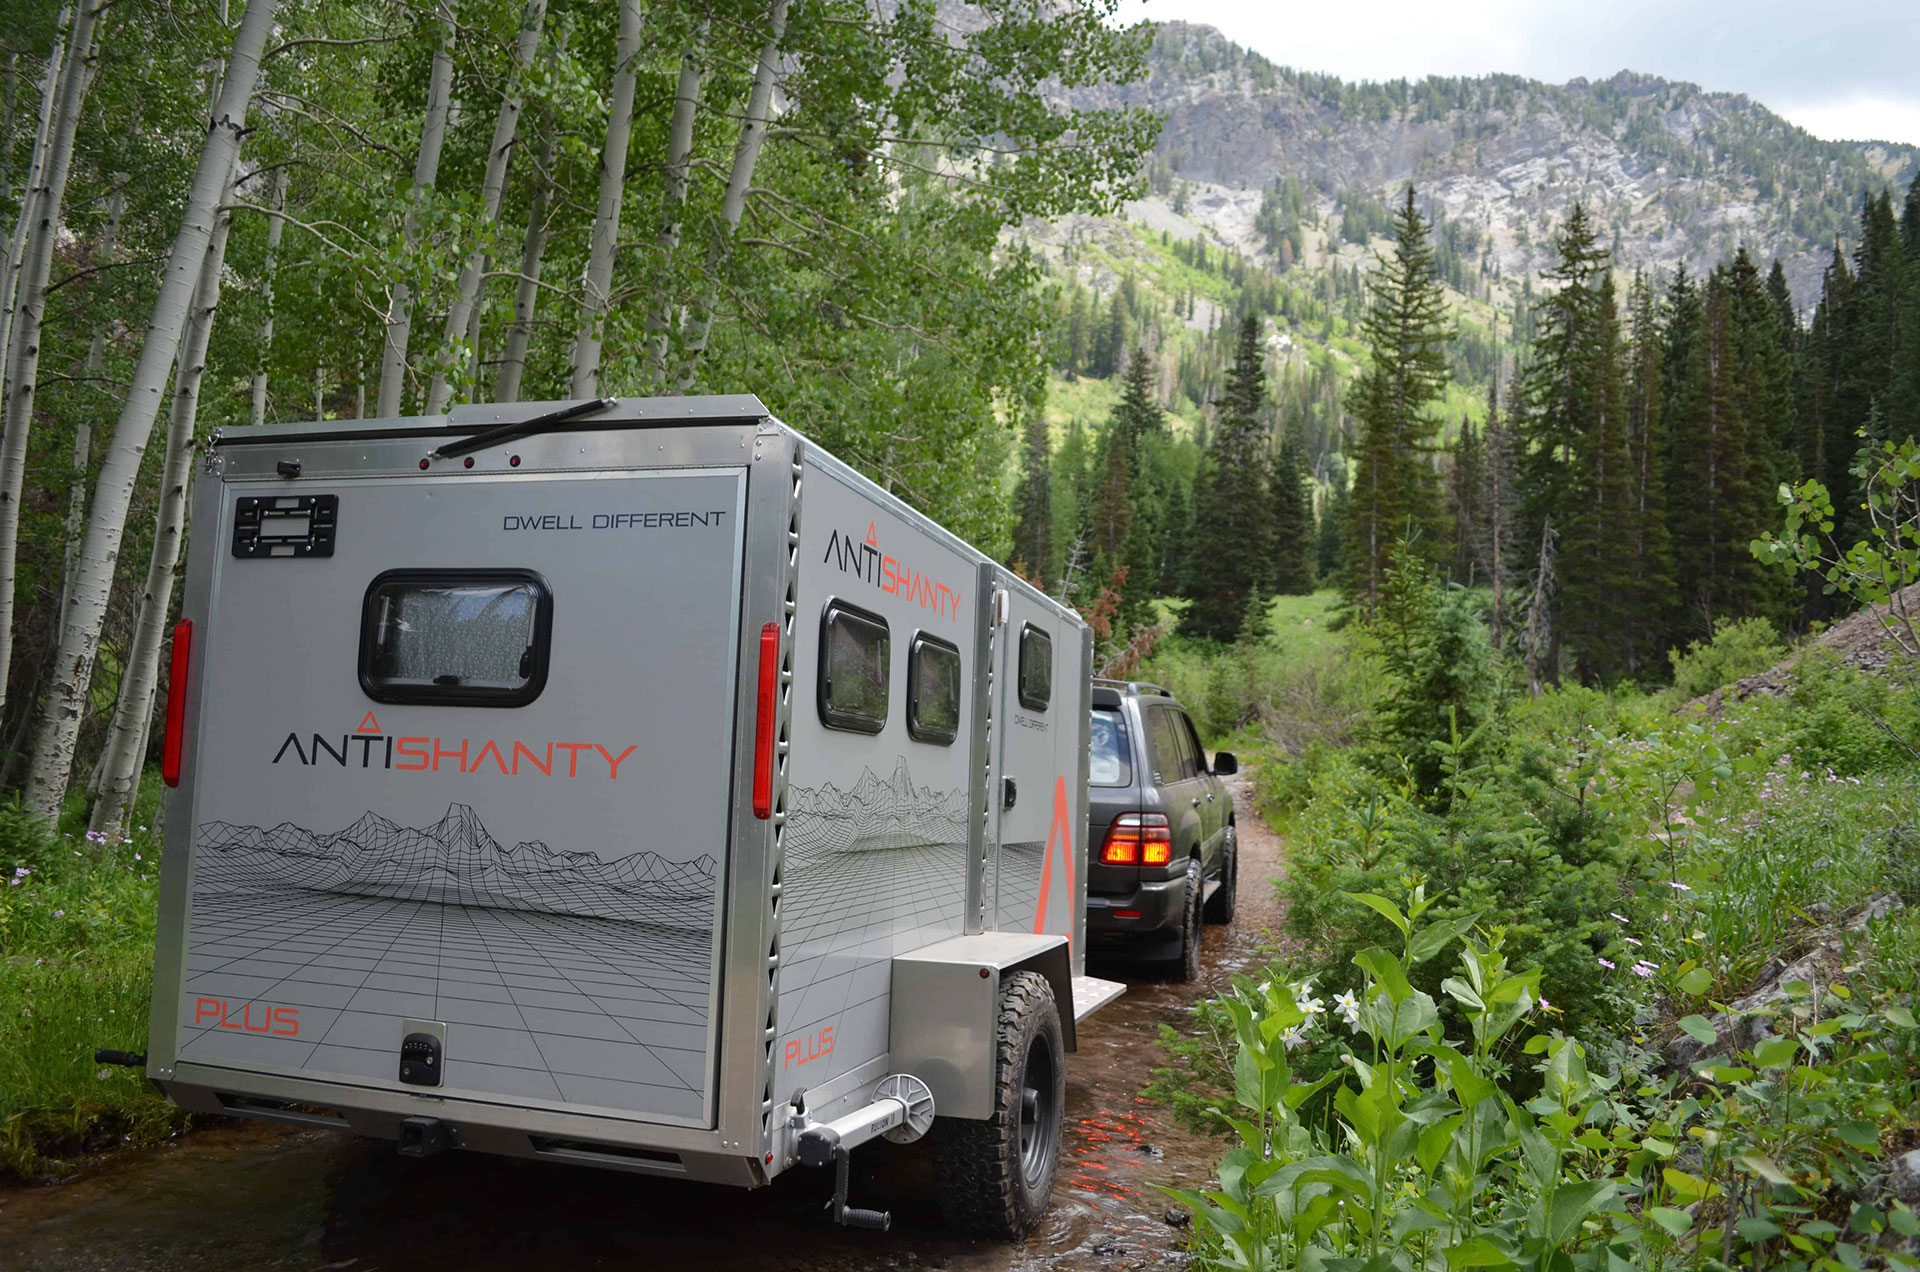 CAMPERS,CARAVANS,TRAVEL TRAILERS AND RV'S - cover